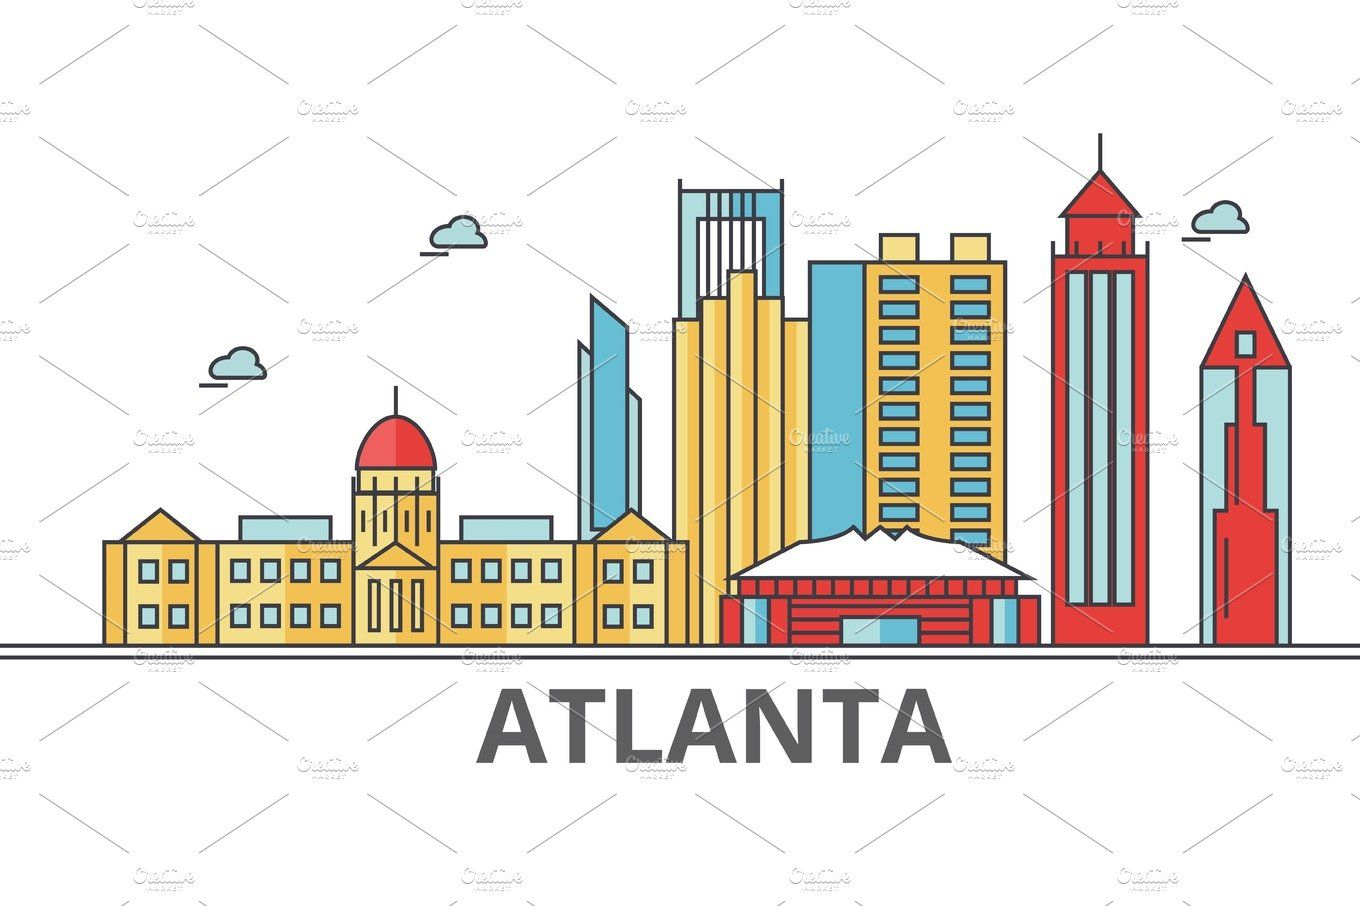 Atlanta City Skyline Buildings Streets Silhouette Architecture Landscape Panorama Landmarks Editable Atlanta City City Skyline Silhouette Architecture